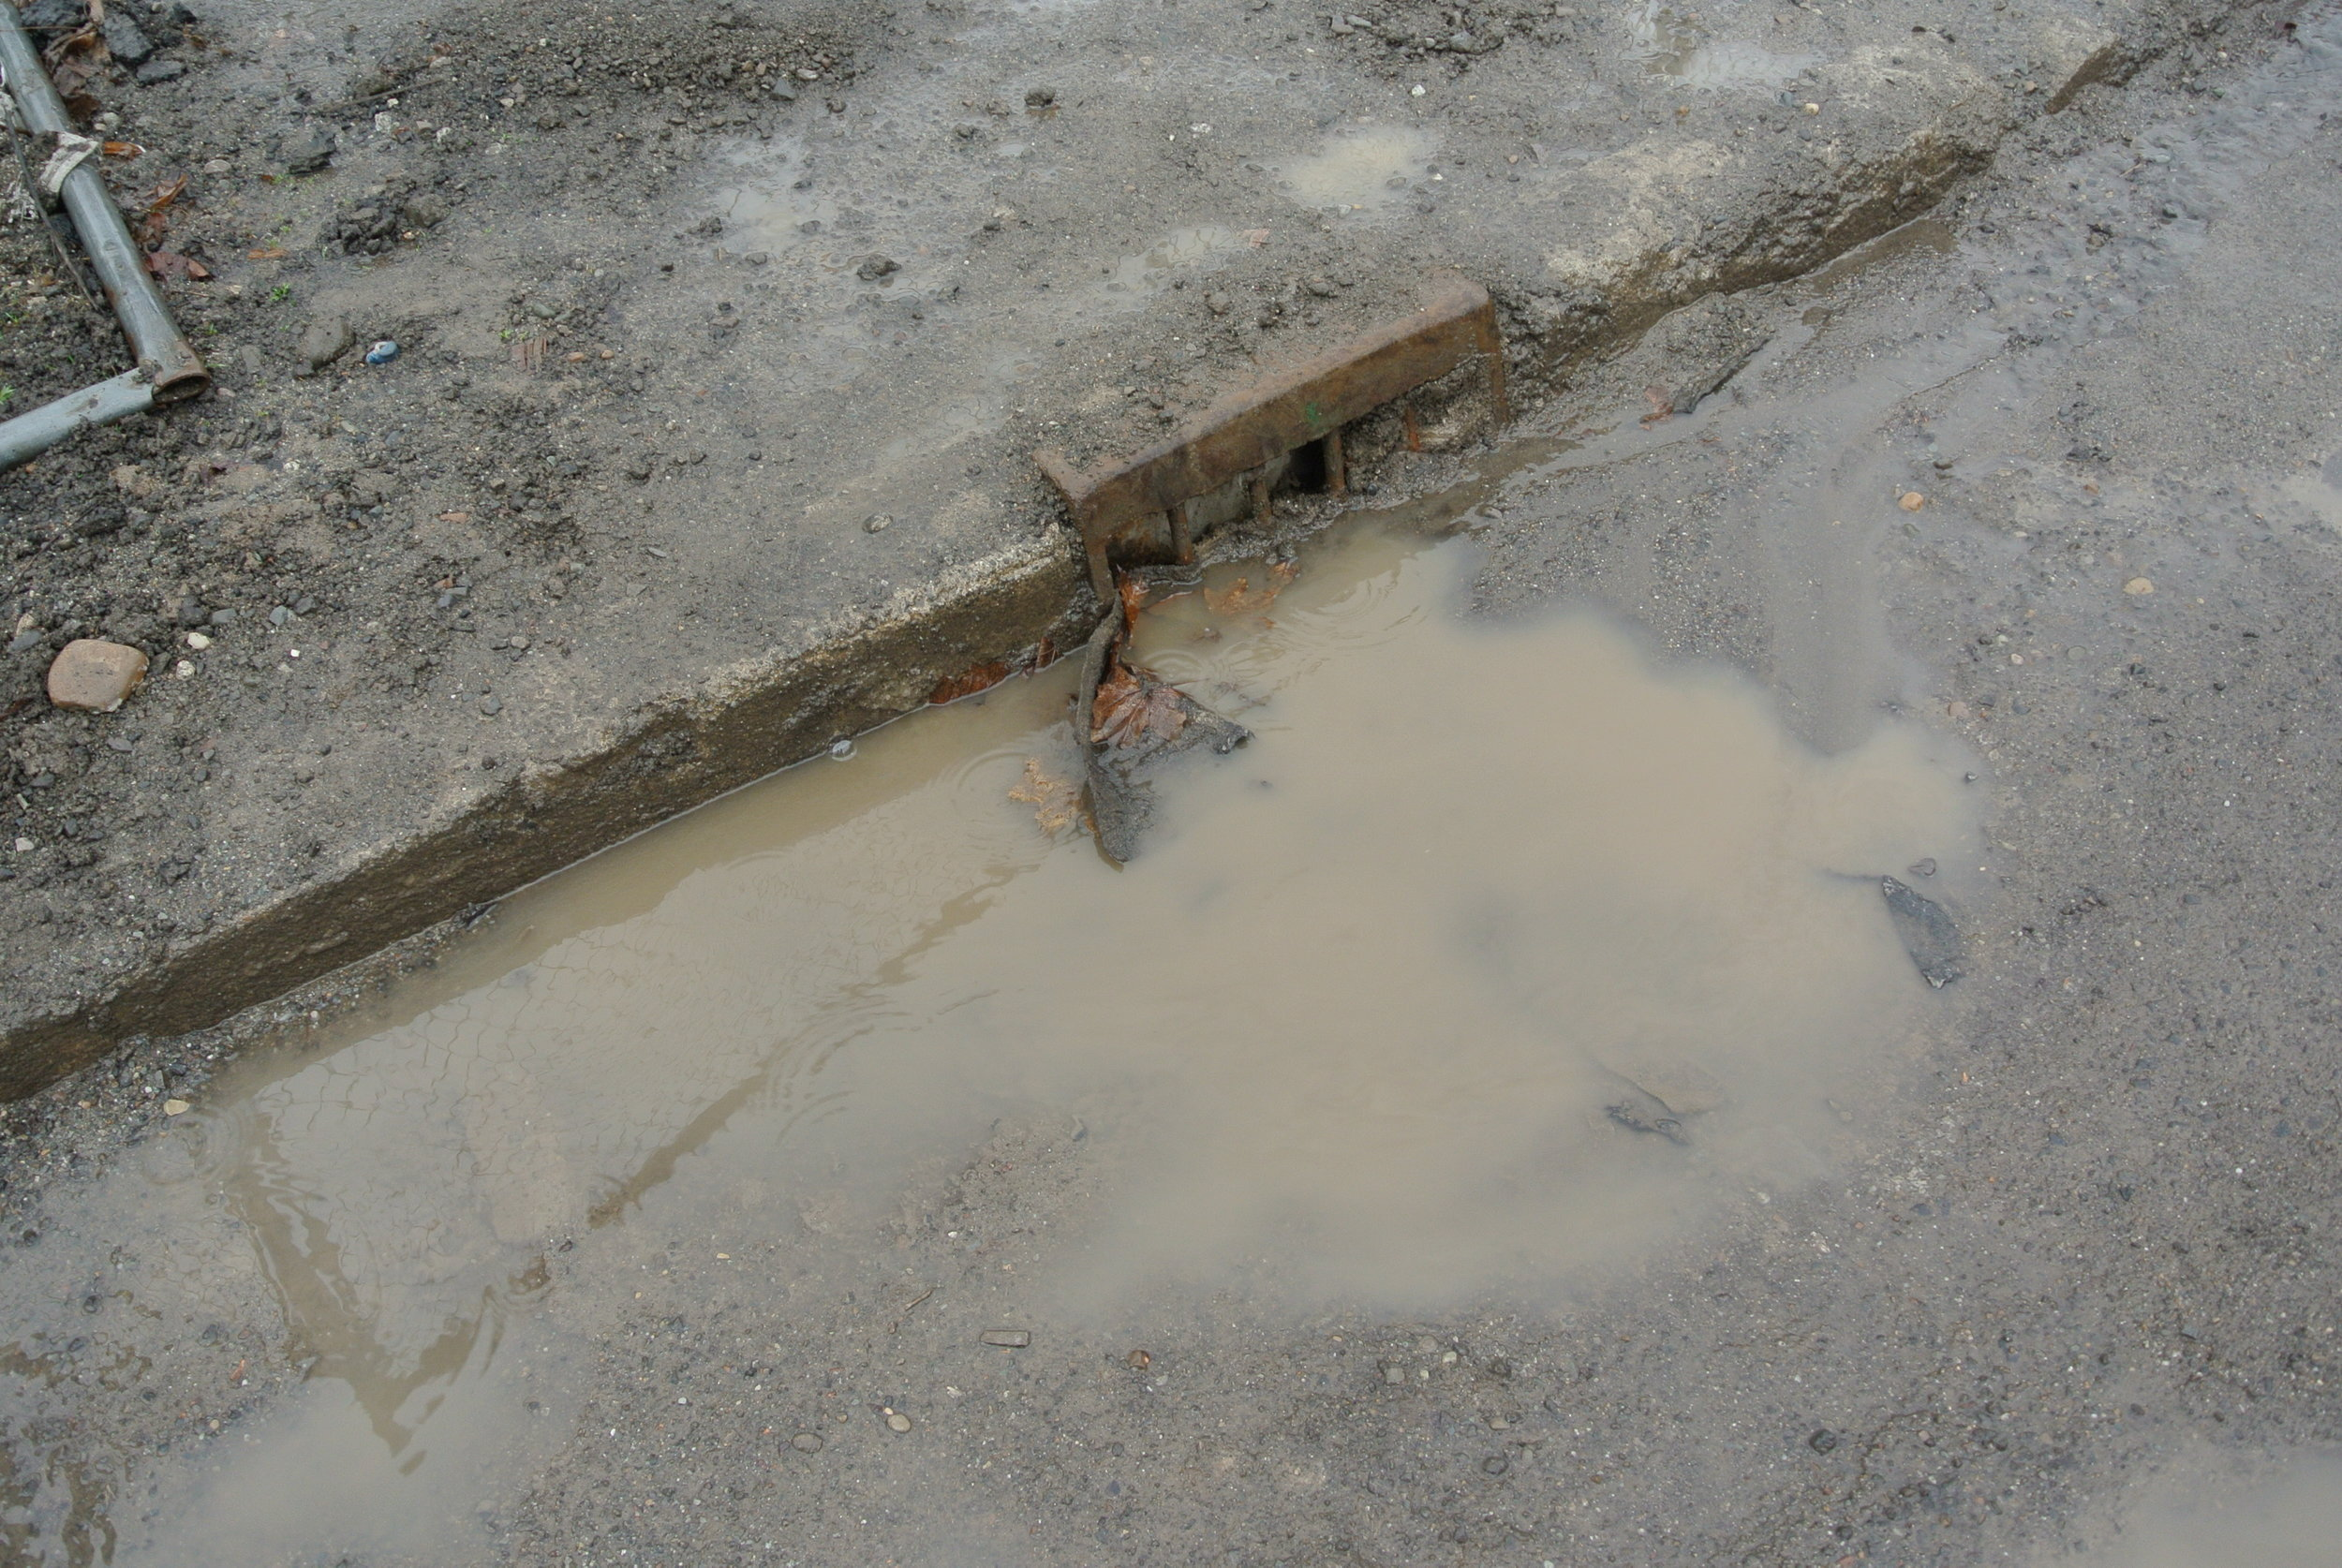 Excessively dirty water entering stormwater drain